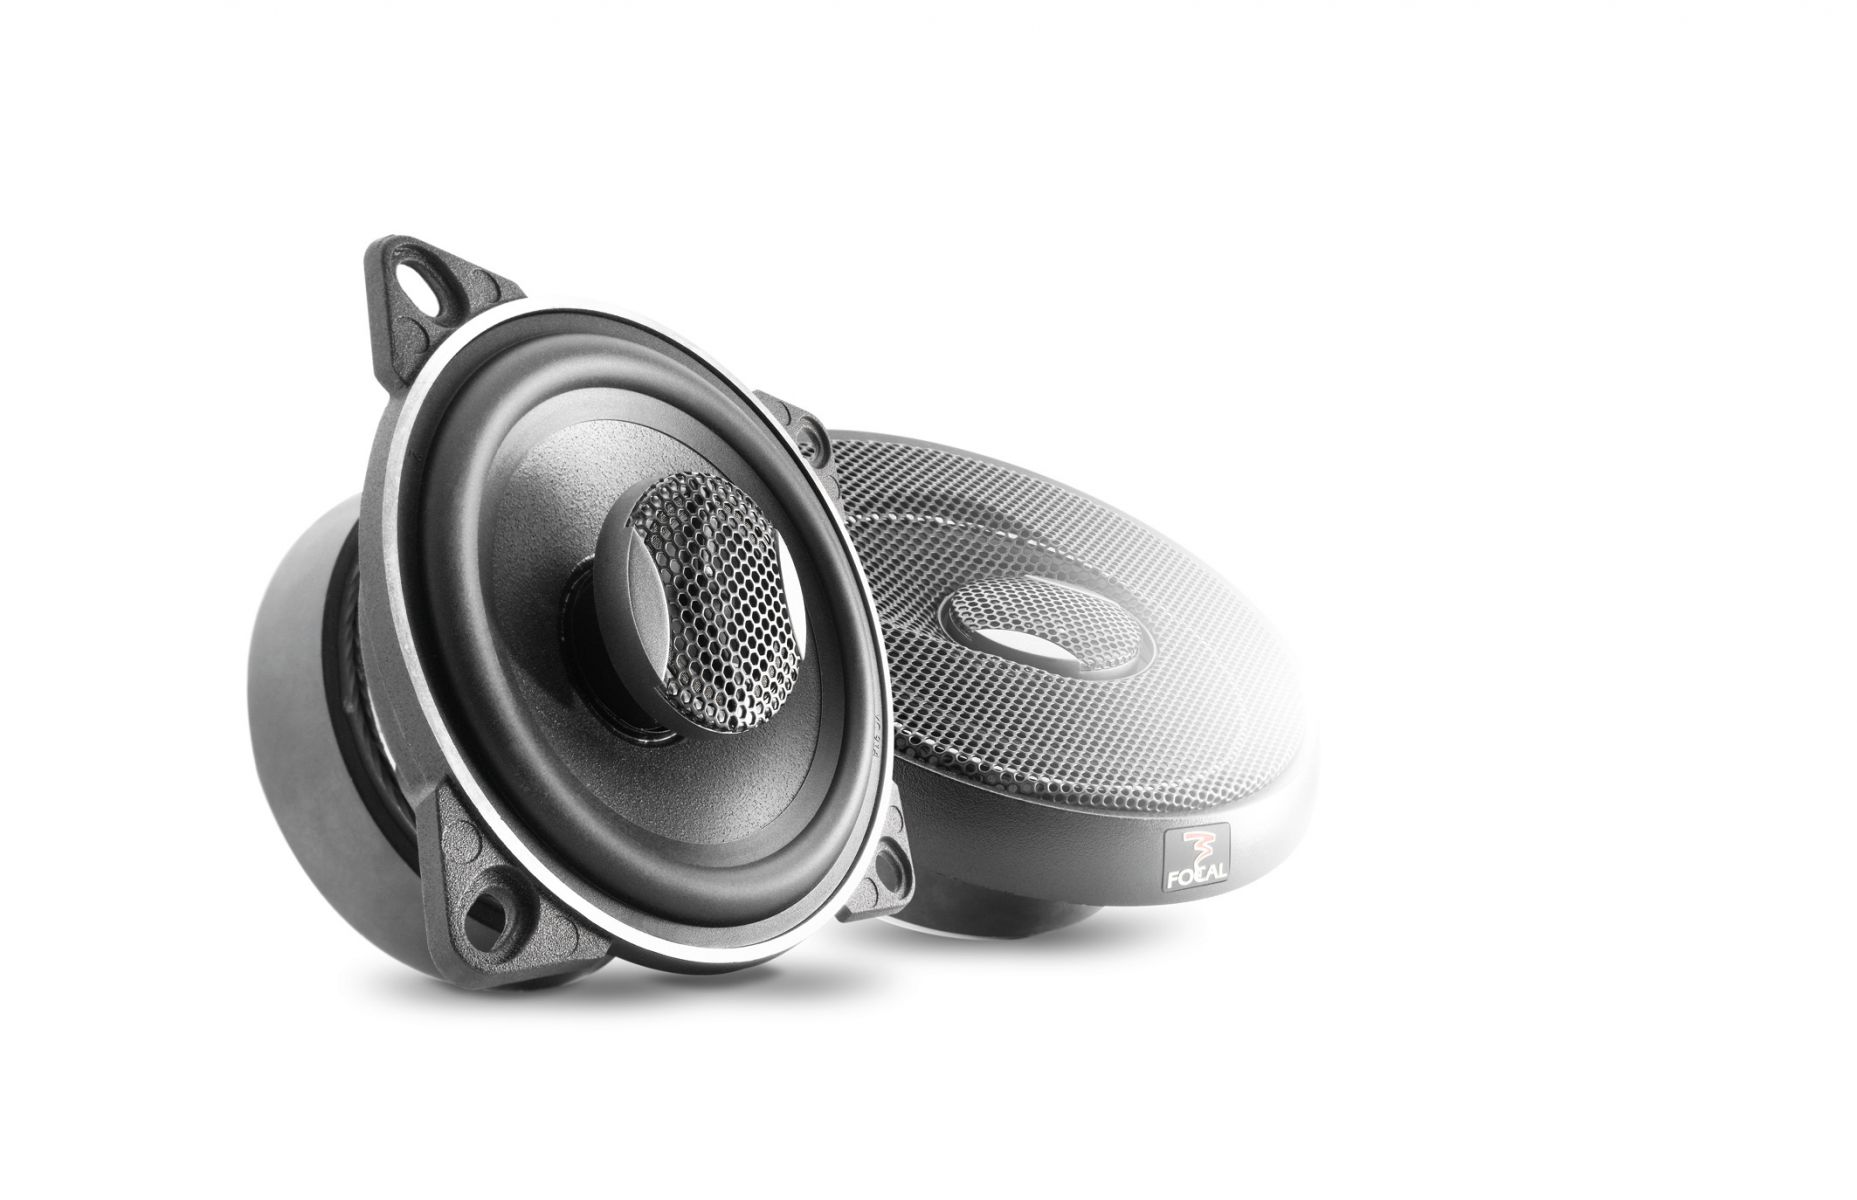 Focal PC 100 Expert